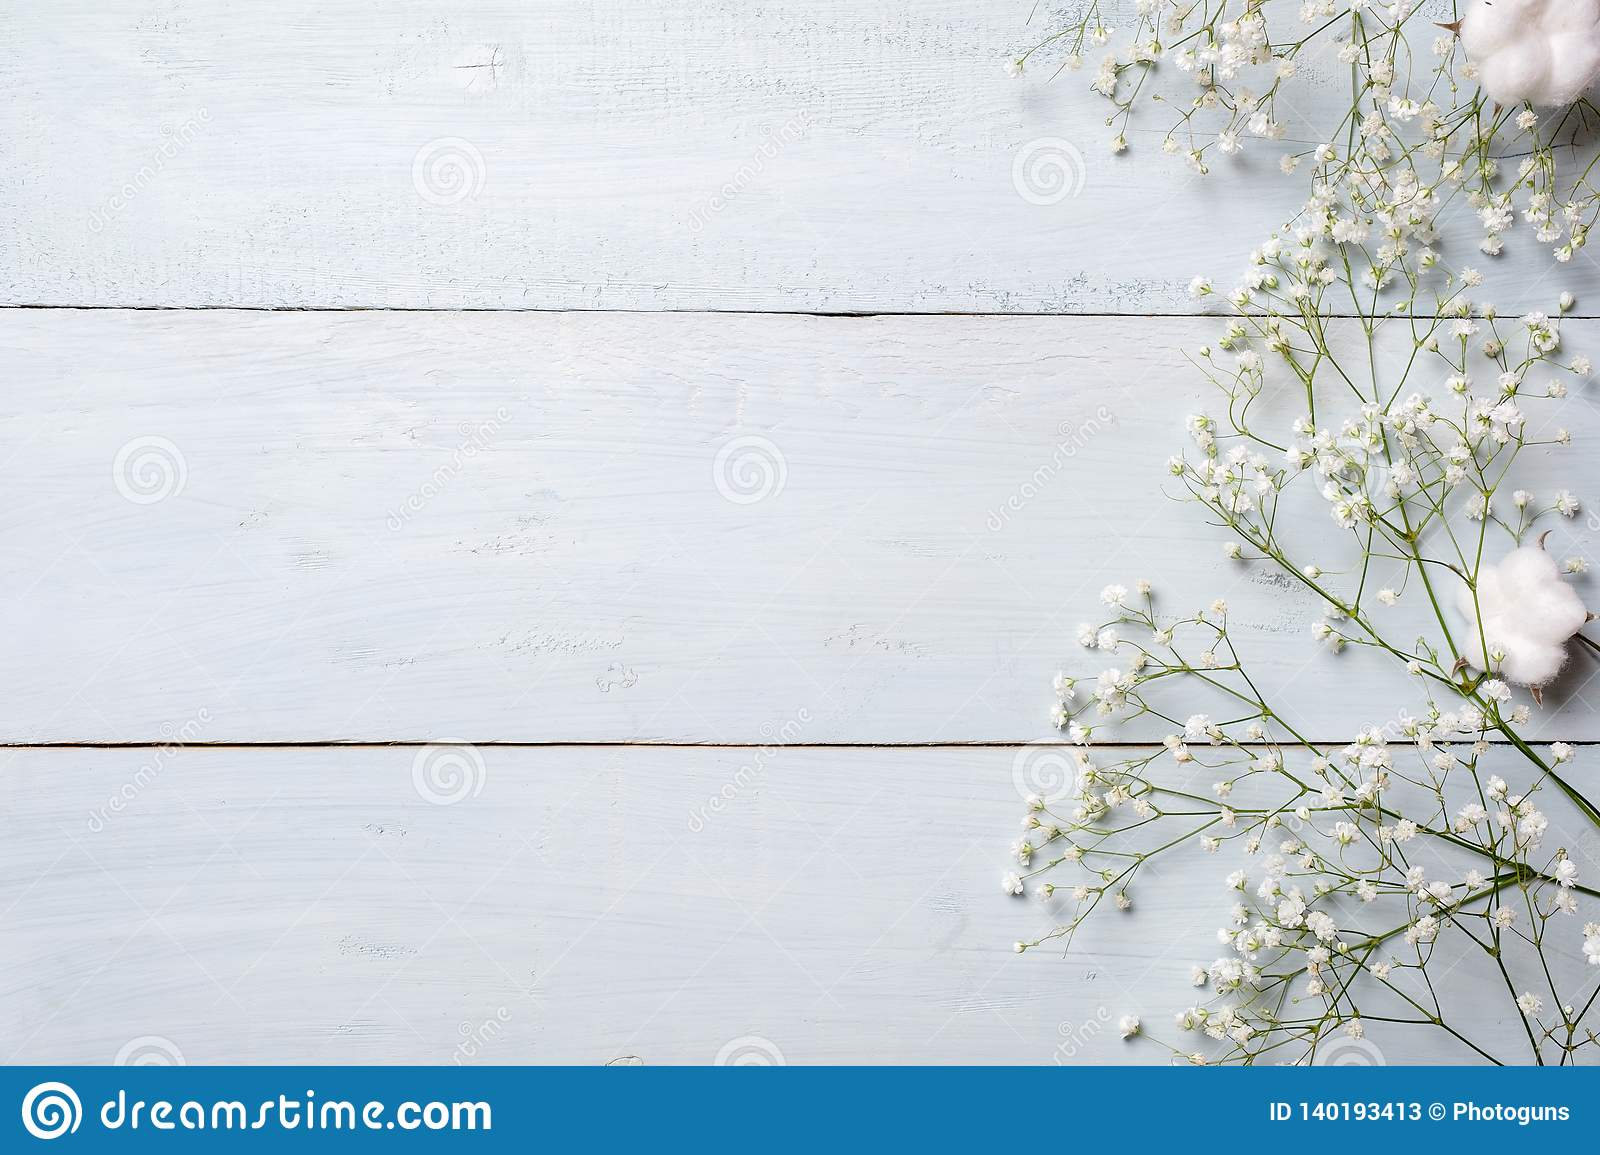 Spring background. White rustic flowers on blue wooden table. Banner mockup for womans or mother day, happy easter, spring holiday